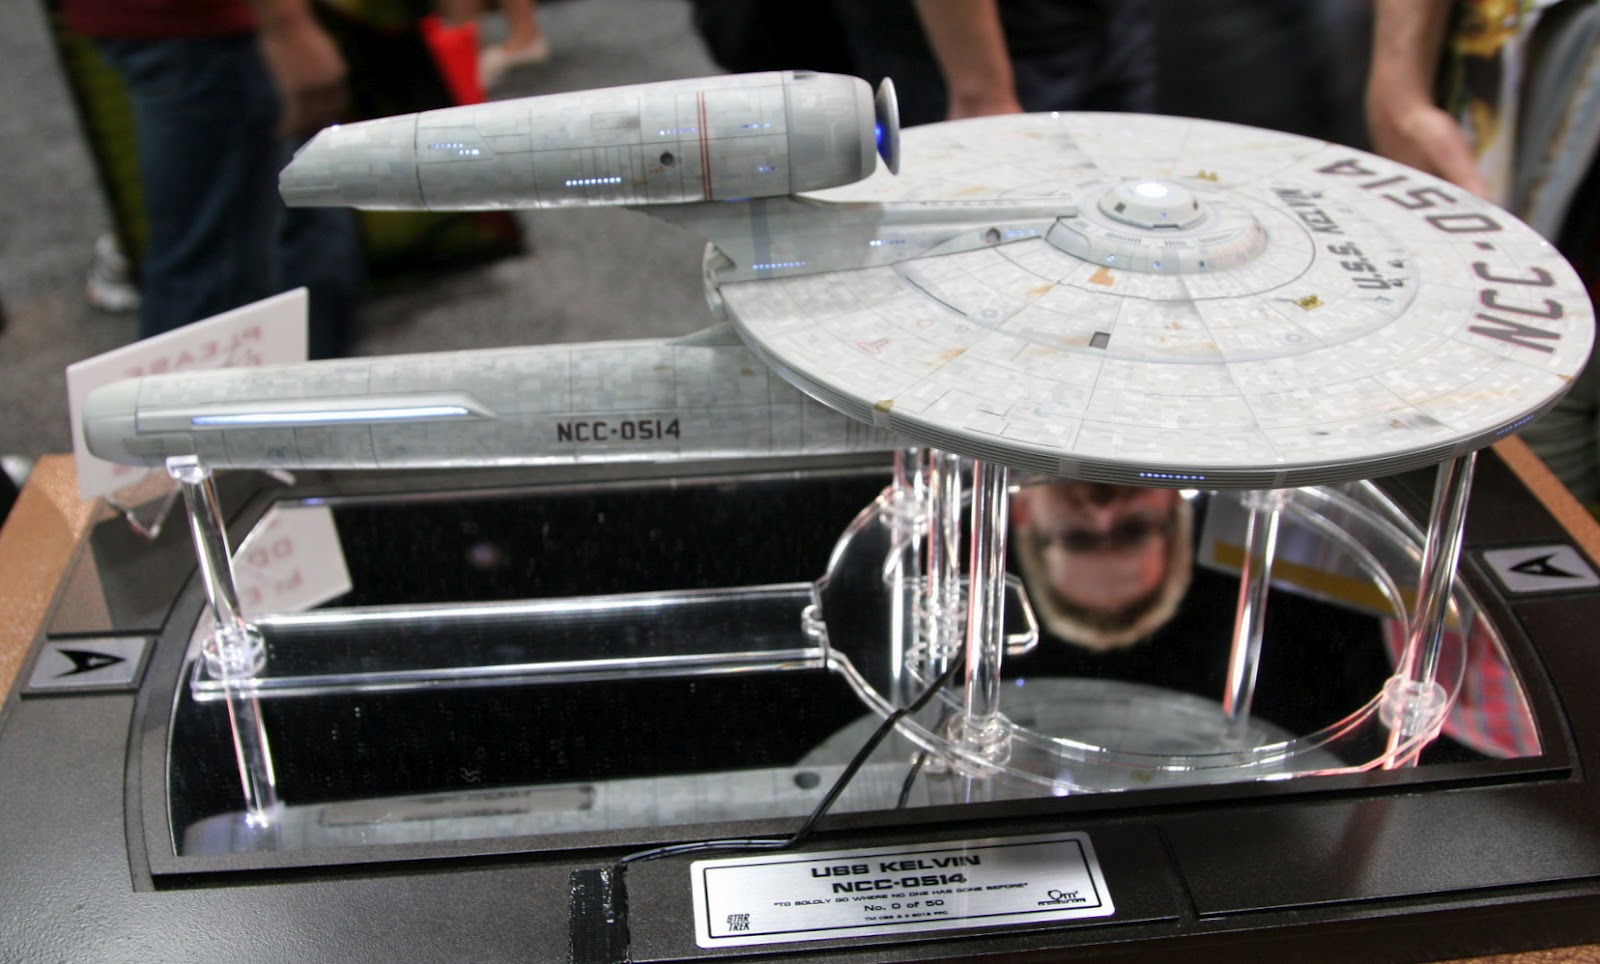 USS Stargazer Model Kit http://www.thetrekcollective.com/2012/07/qmx-kelvin-and-enterprise-d.html